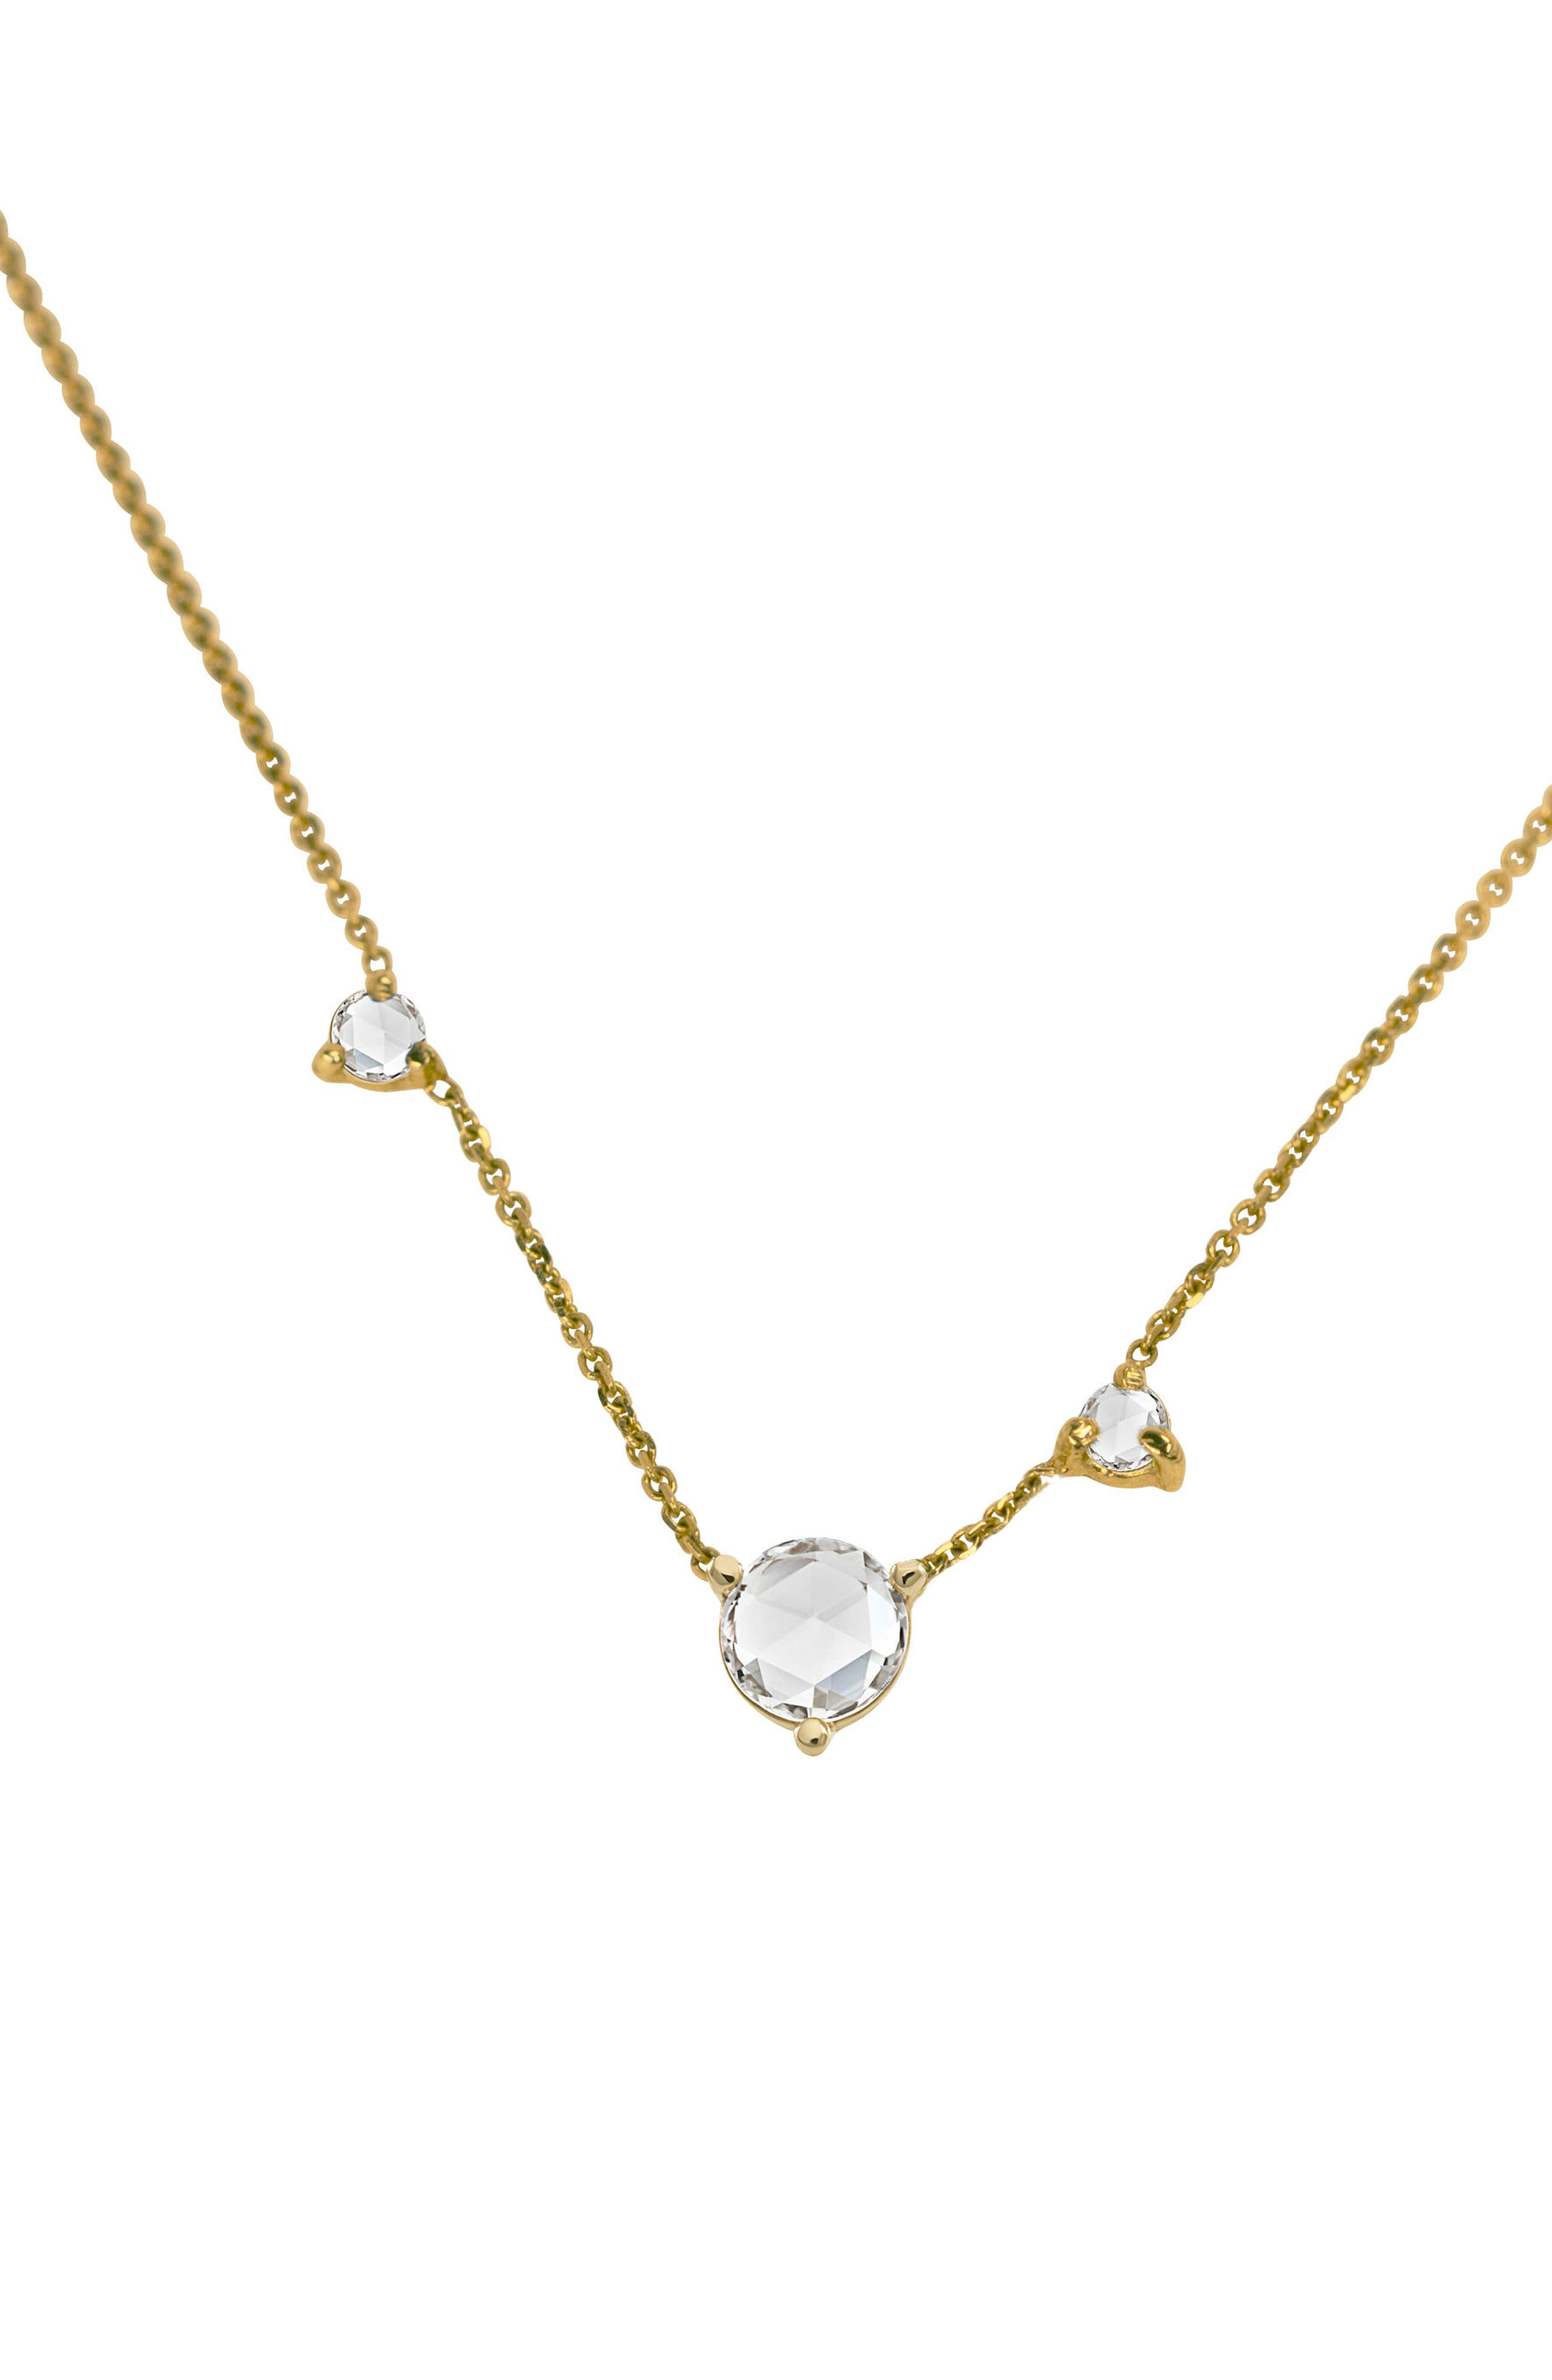 WWAKE COUNTING COLLECTION THREE-STEP ROSE CUT DIAMOND NECKLACE